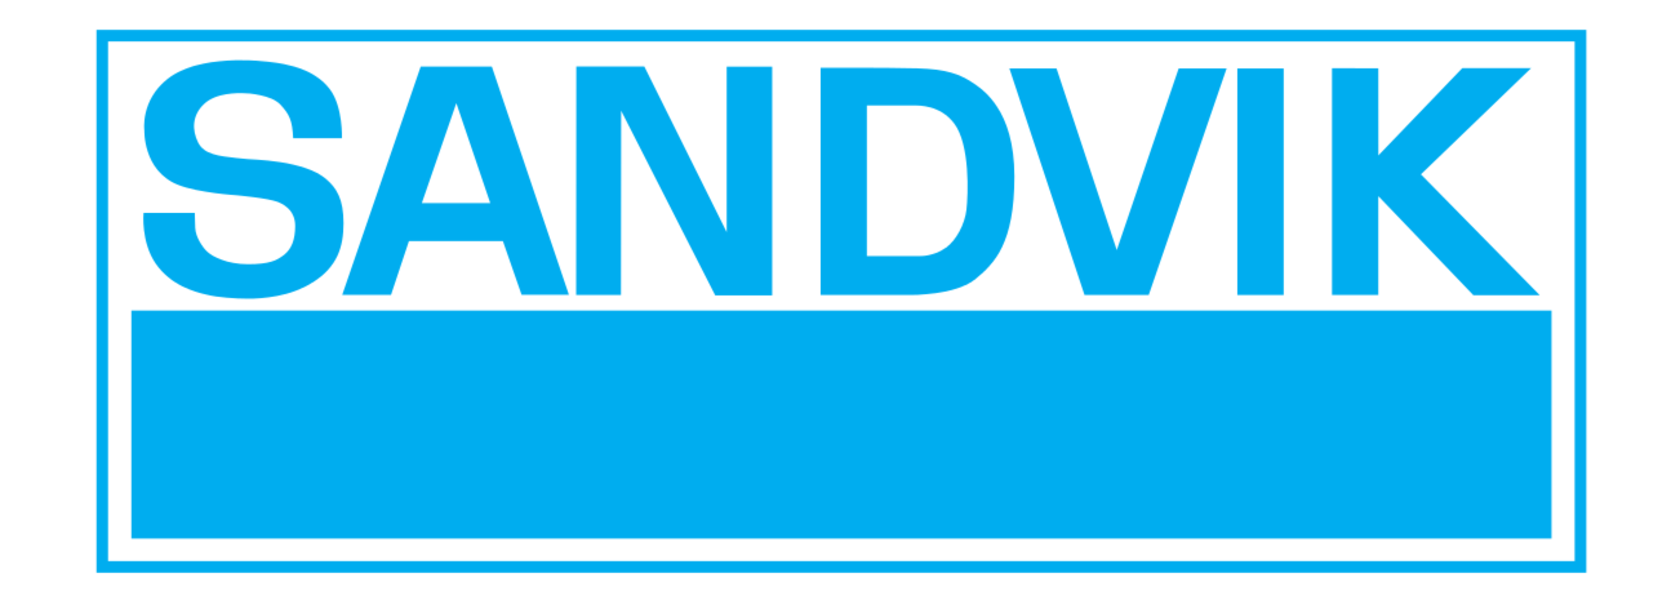 Sandvik to cut hours, some jobs to go